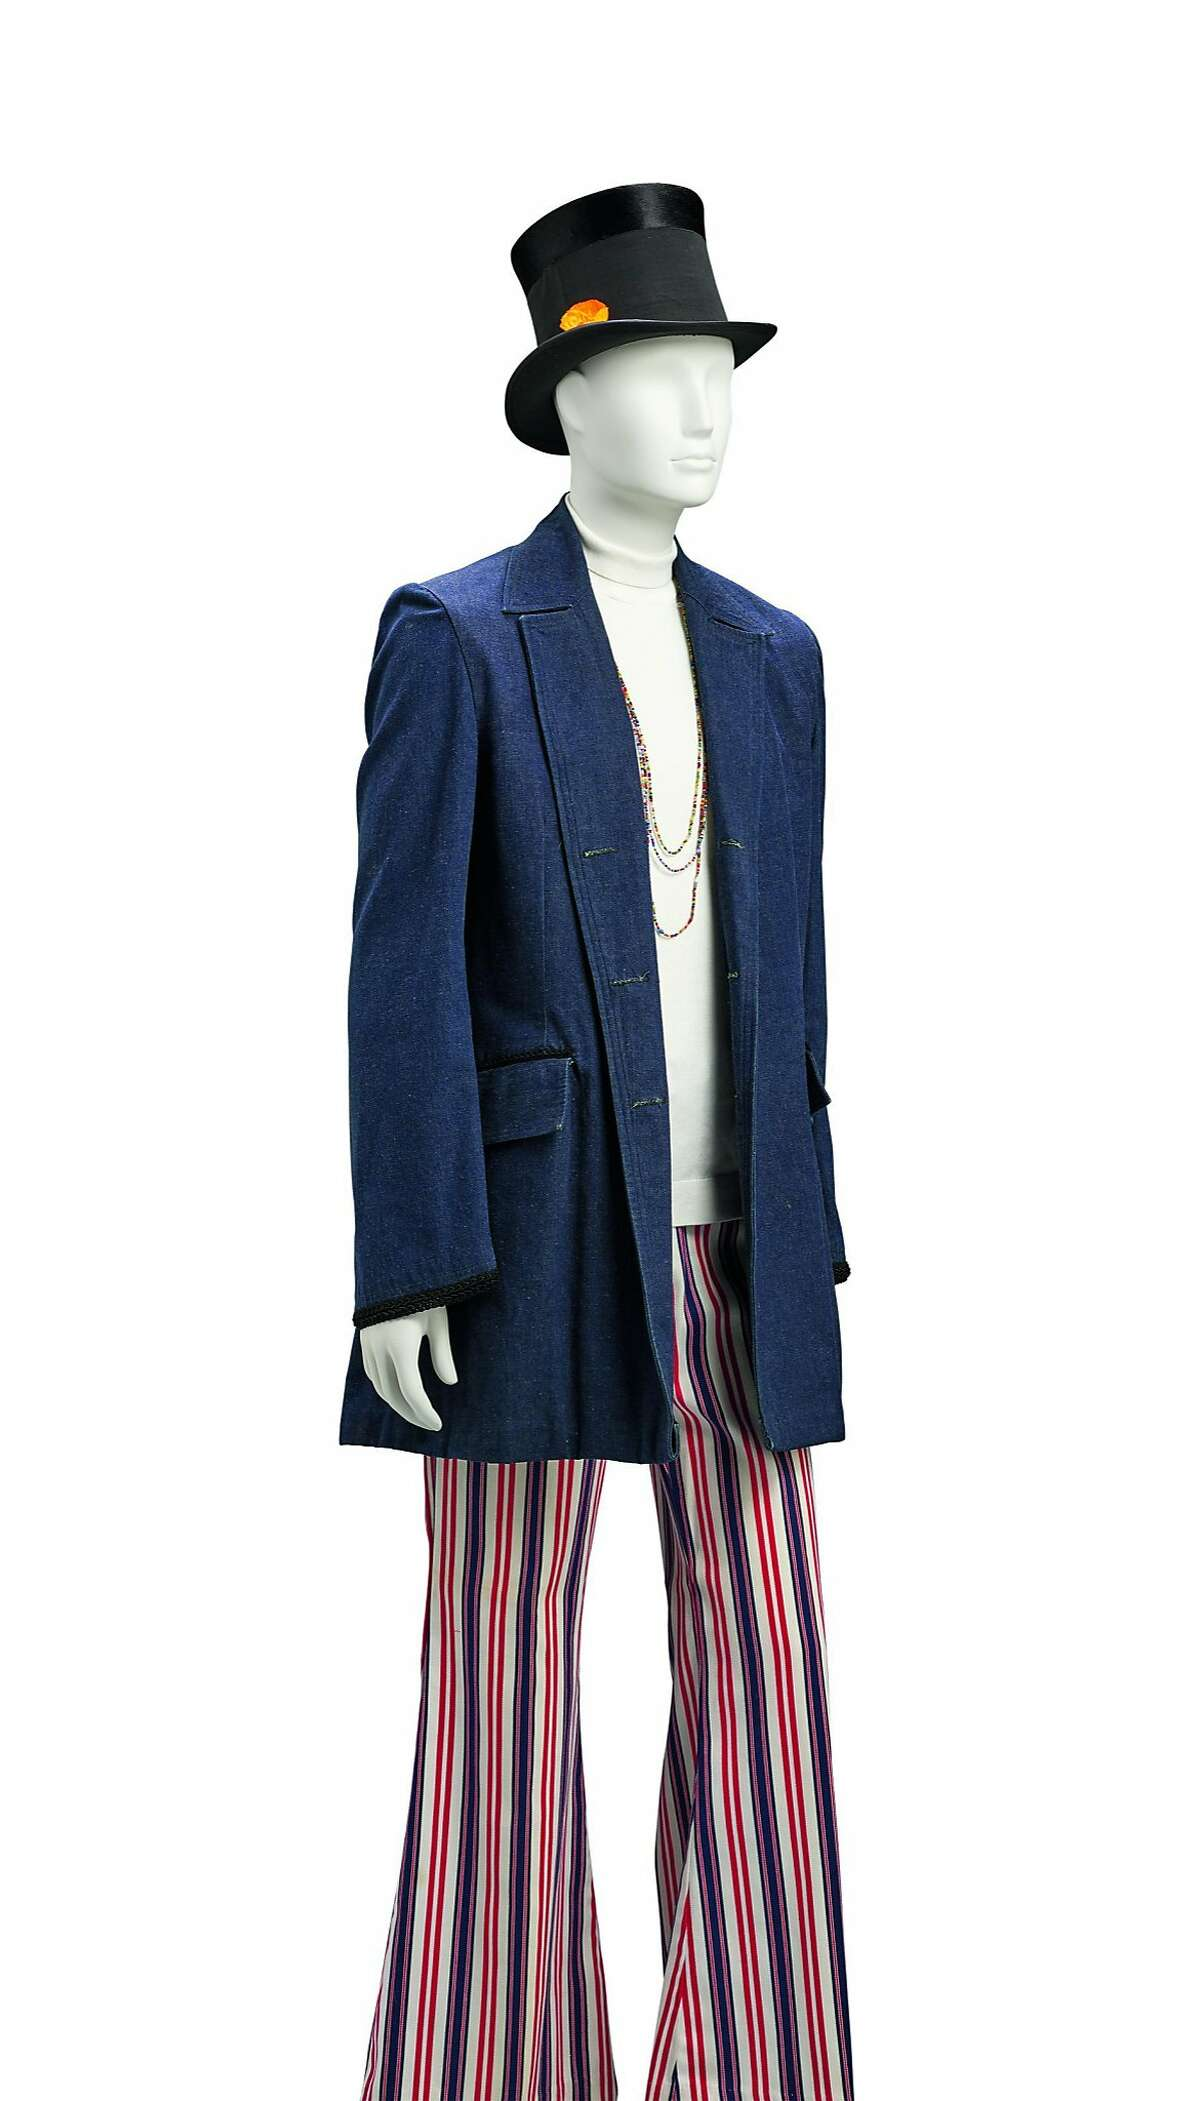 Jeanne Rose, jacket, ca. 1969. Denim with braid trim. Collection of the artist. Pants, ca. 1969. Striped cotton twill. Collection of Decades of Fashion. John W. Loader, top hat, 1903. Silk plain weave, beaver fur, and leather. Fine Arts Museums of San Francisco, Gift of Miss Evelyn Erickson. Image Courtesy of the Fine Arts Museums of San Francisco